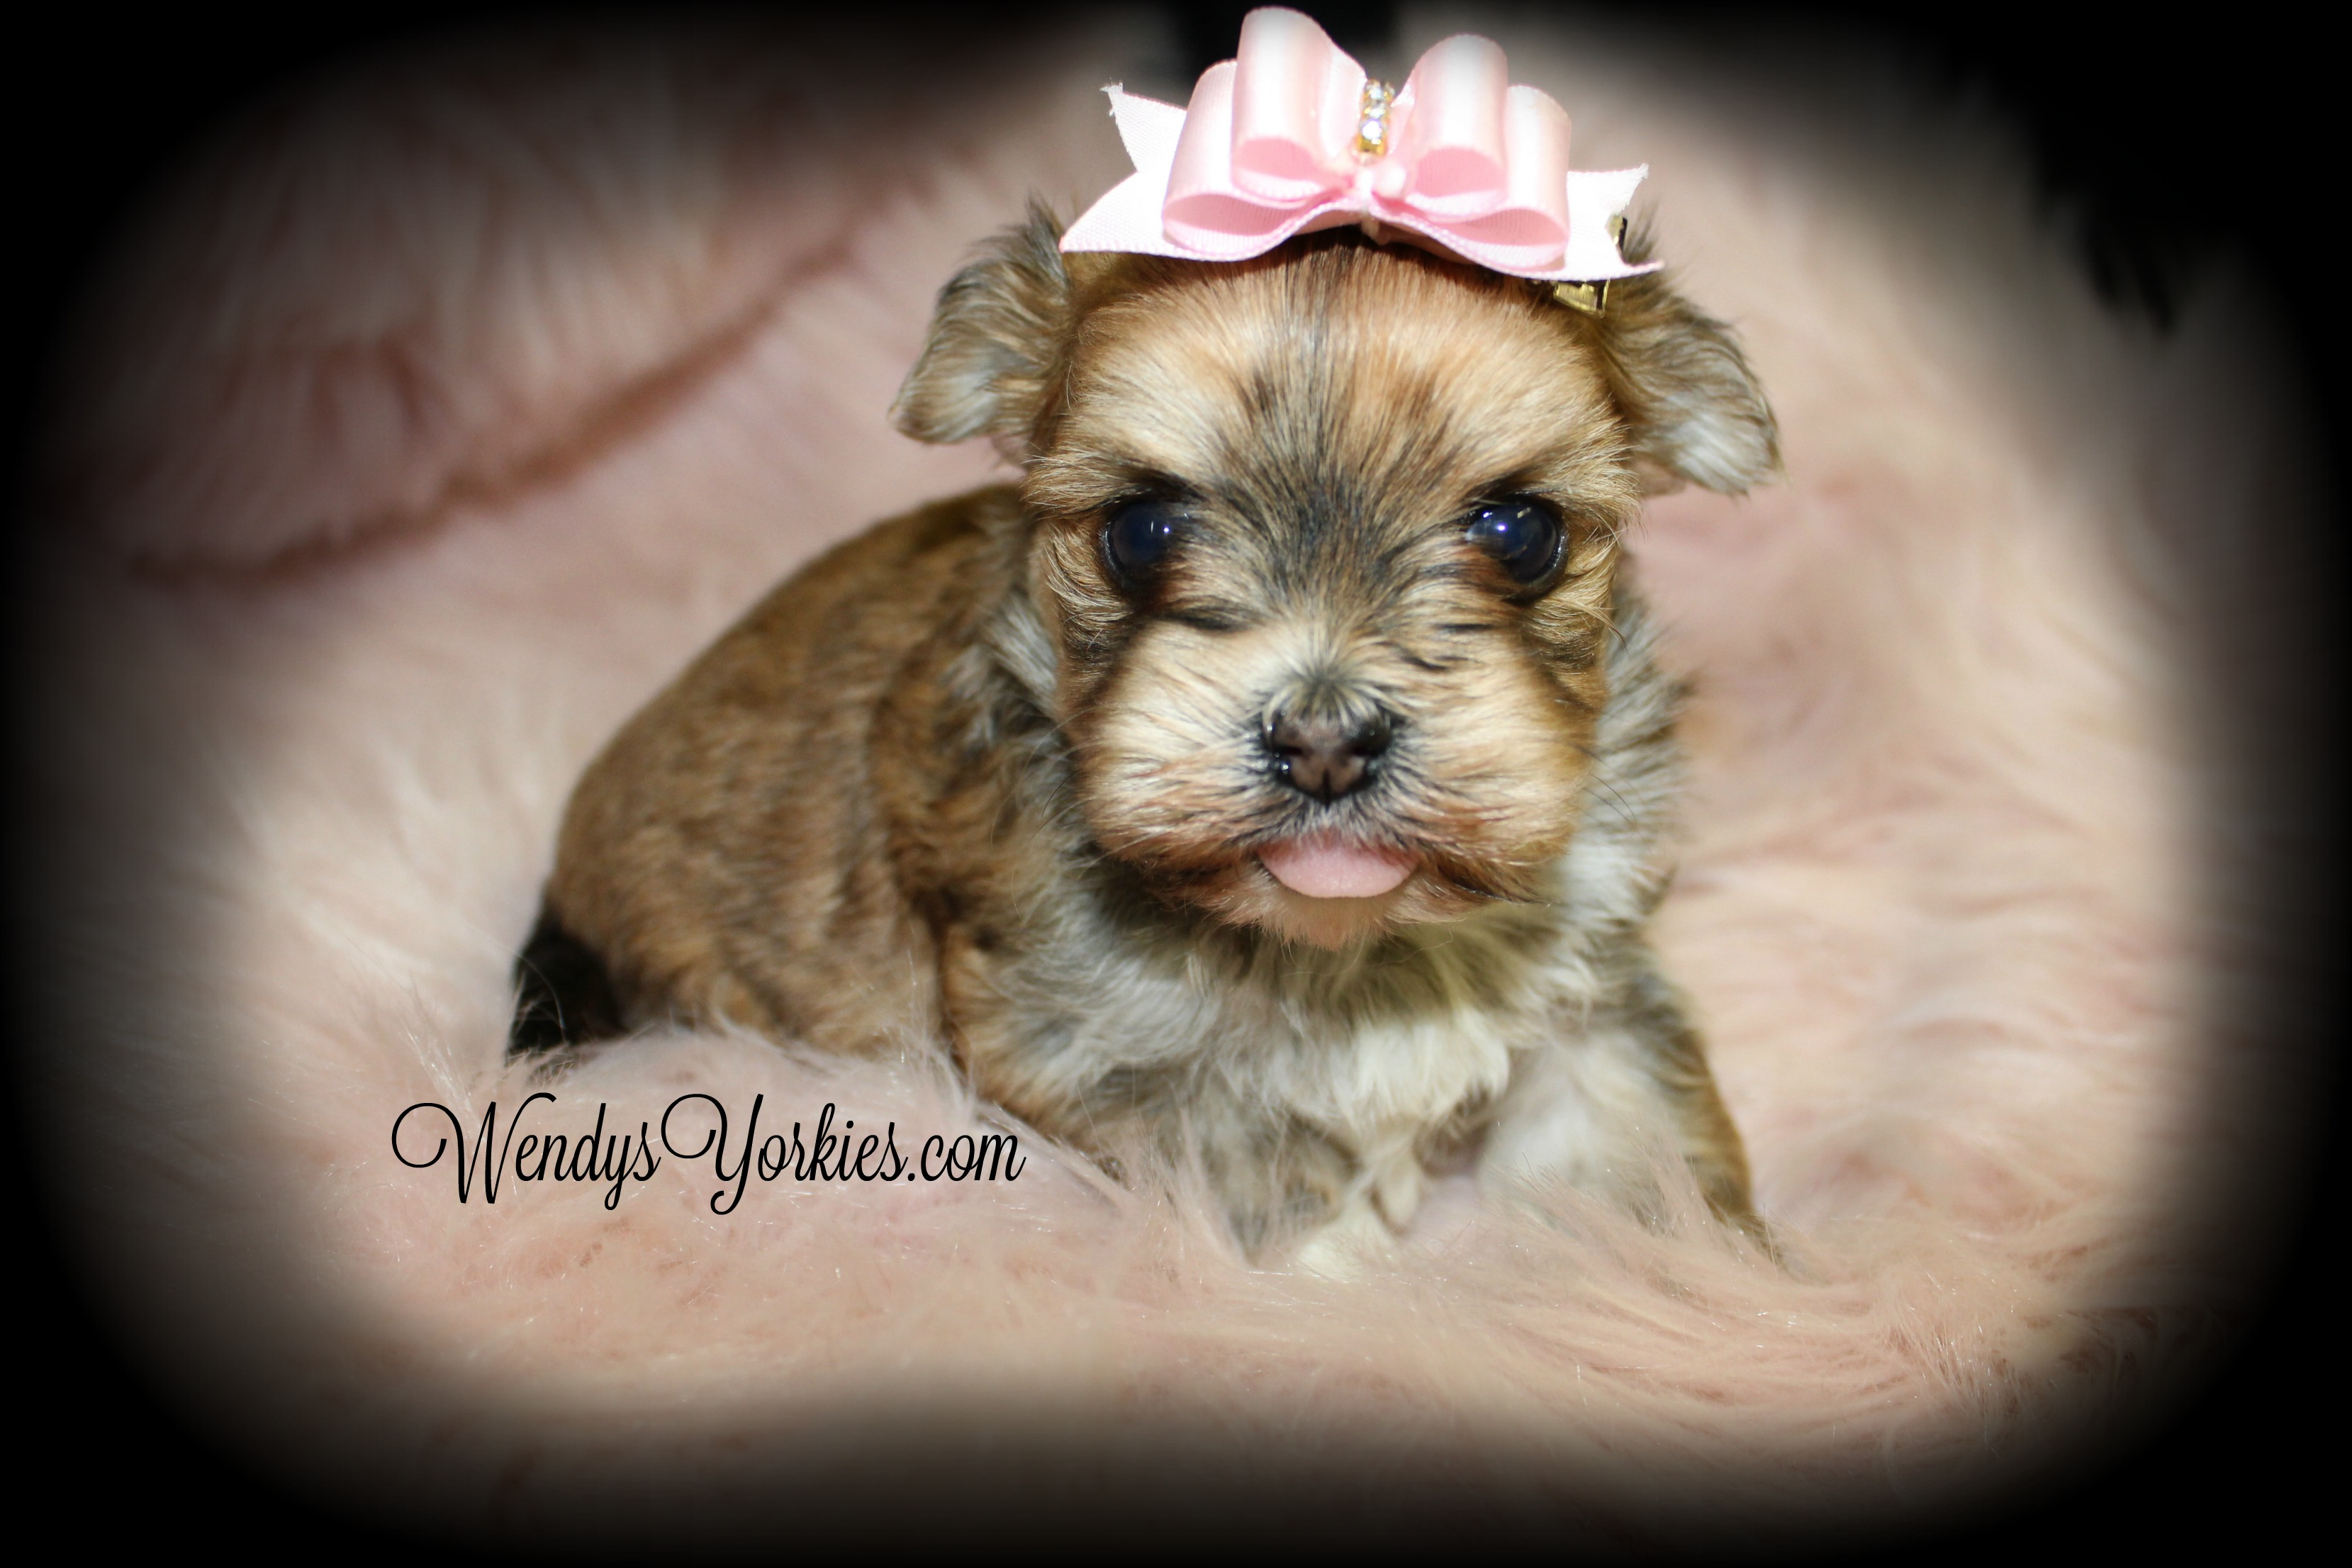 Teacup Morkie puppy for sale, WendysYorkies.com, Cloud f2 Golden